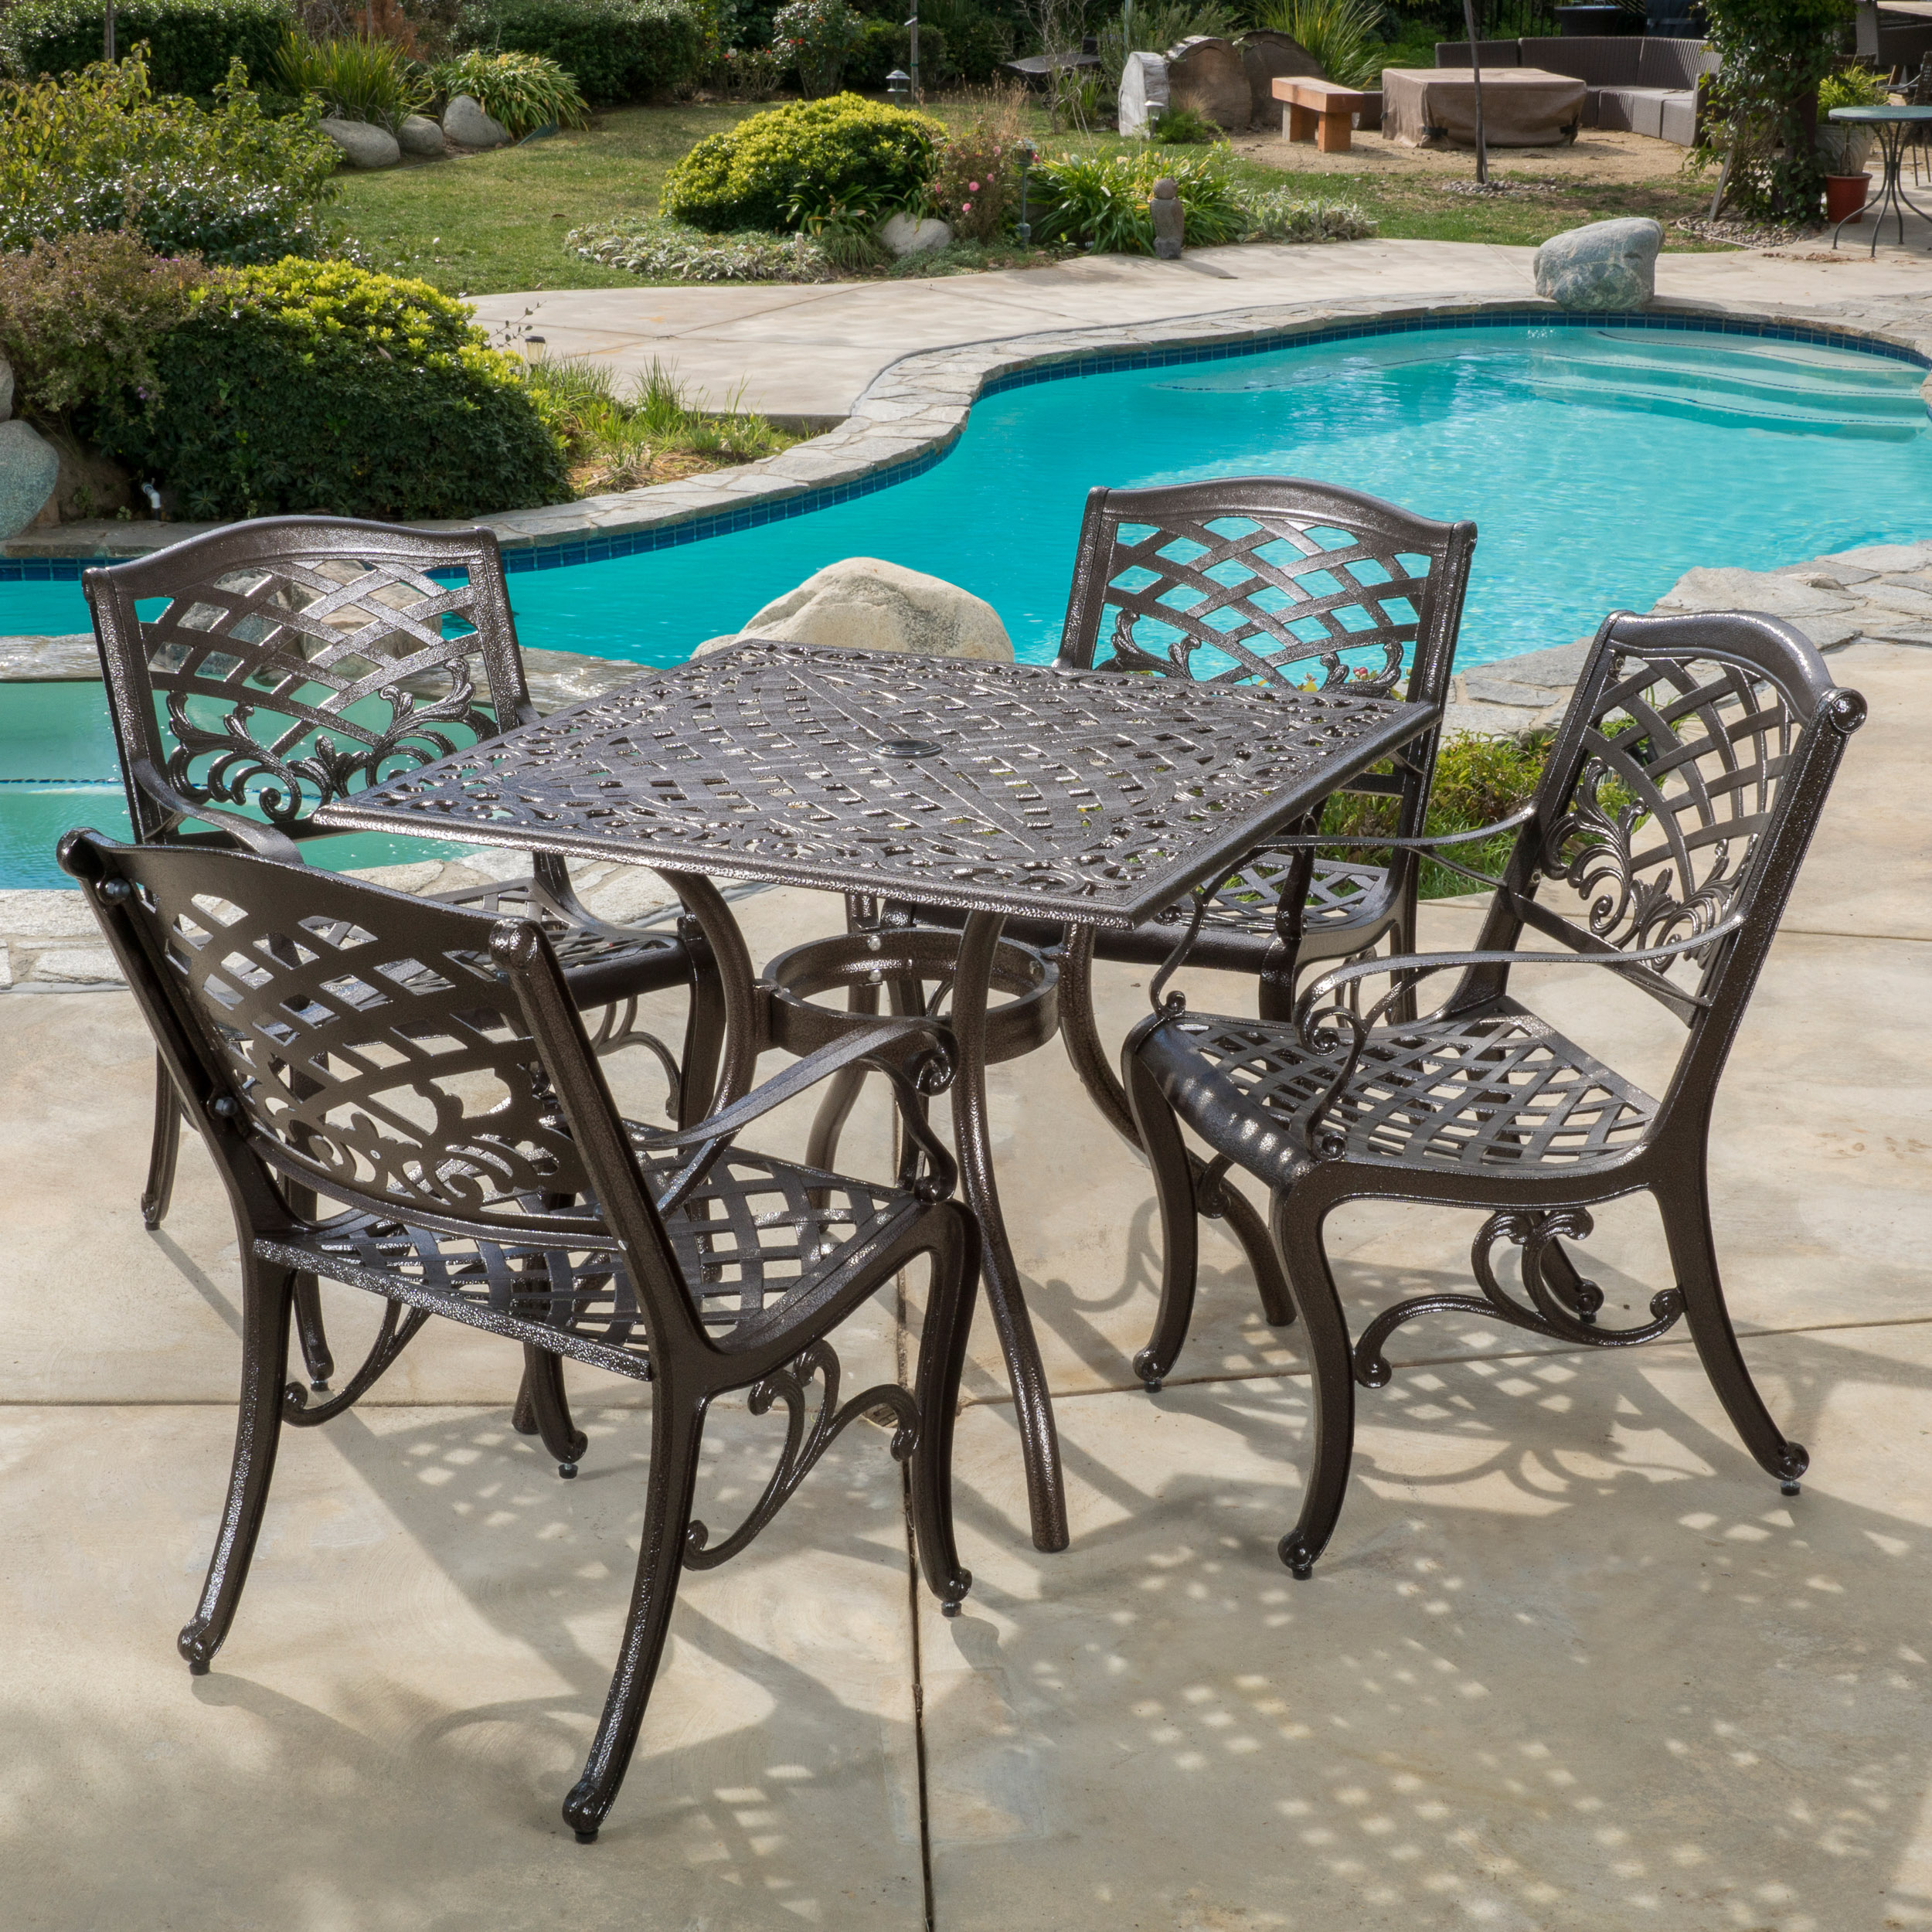 Pittman Outdoor Cast Aluminum 5 Piece Square Dining Set, Hammered Bronze